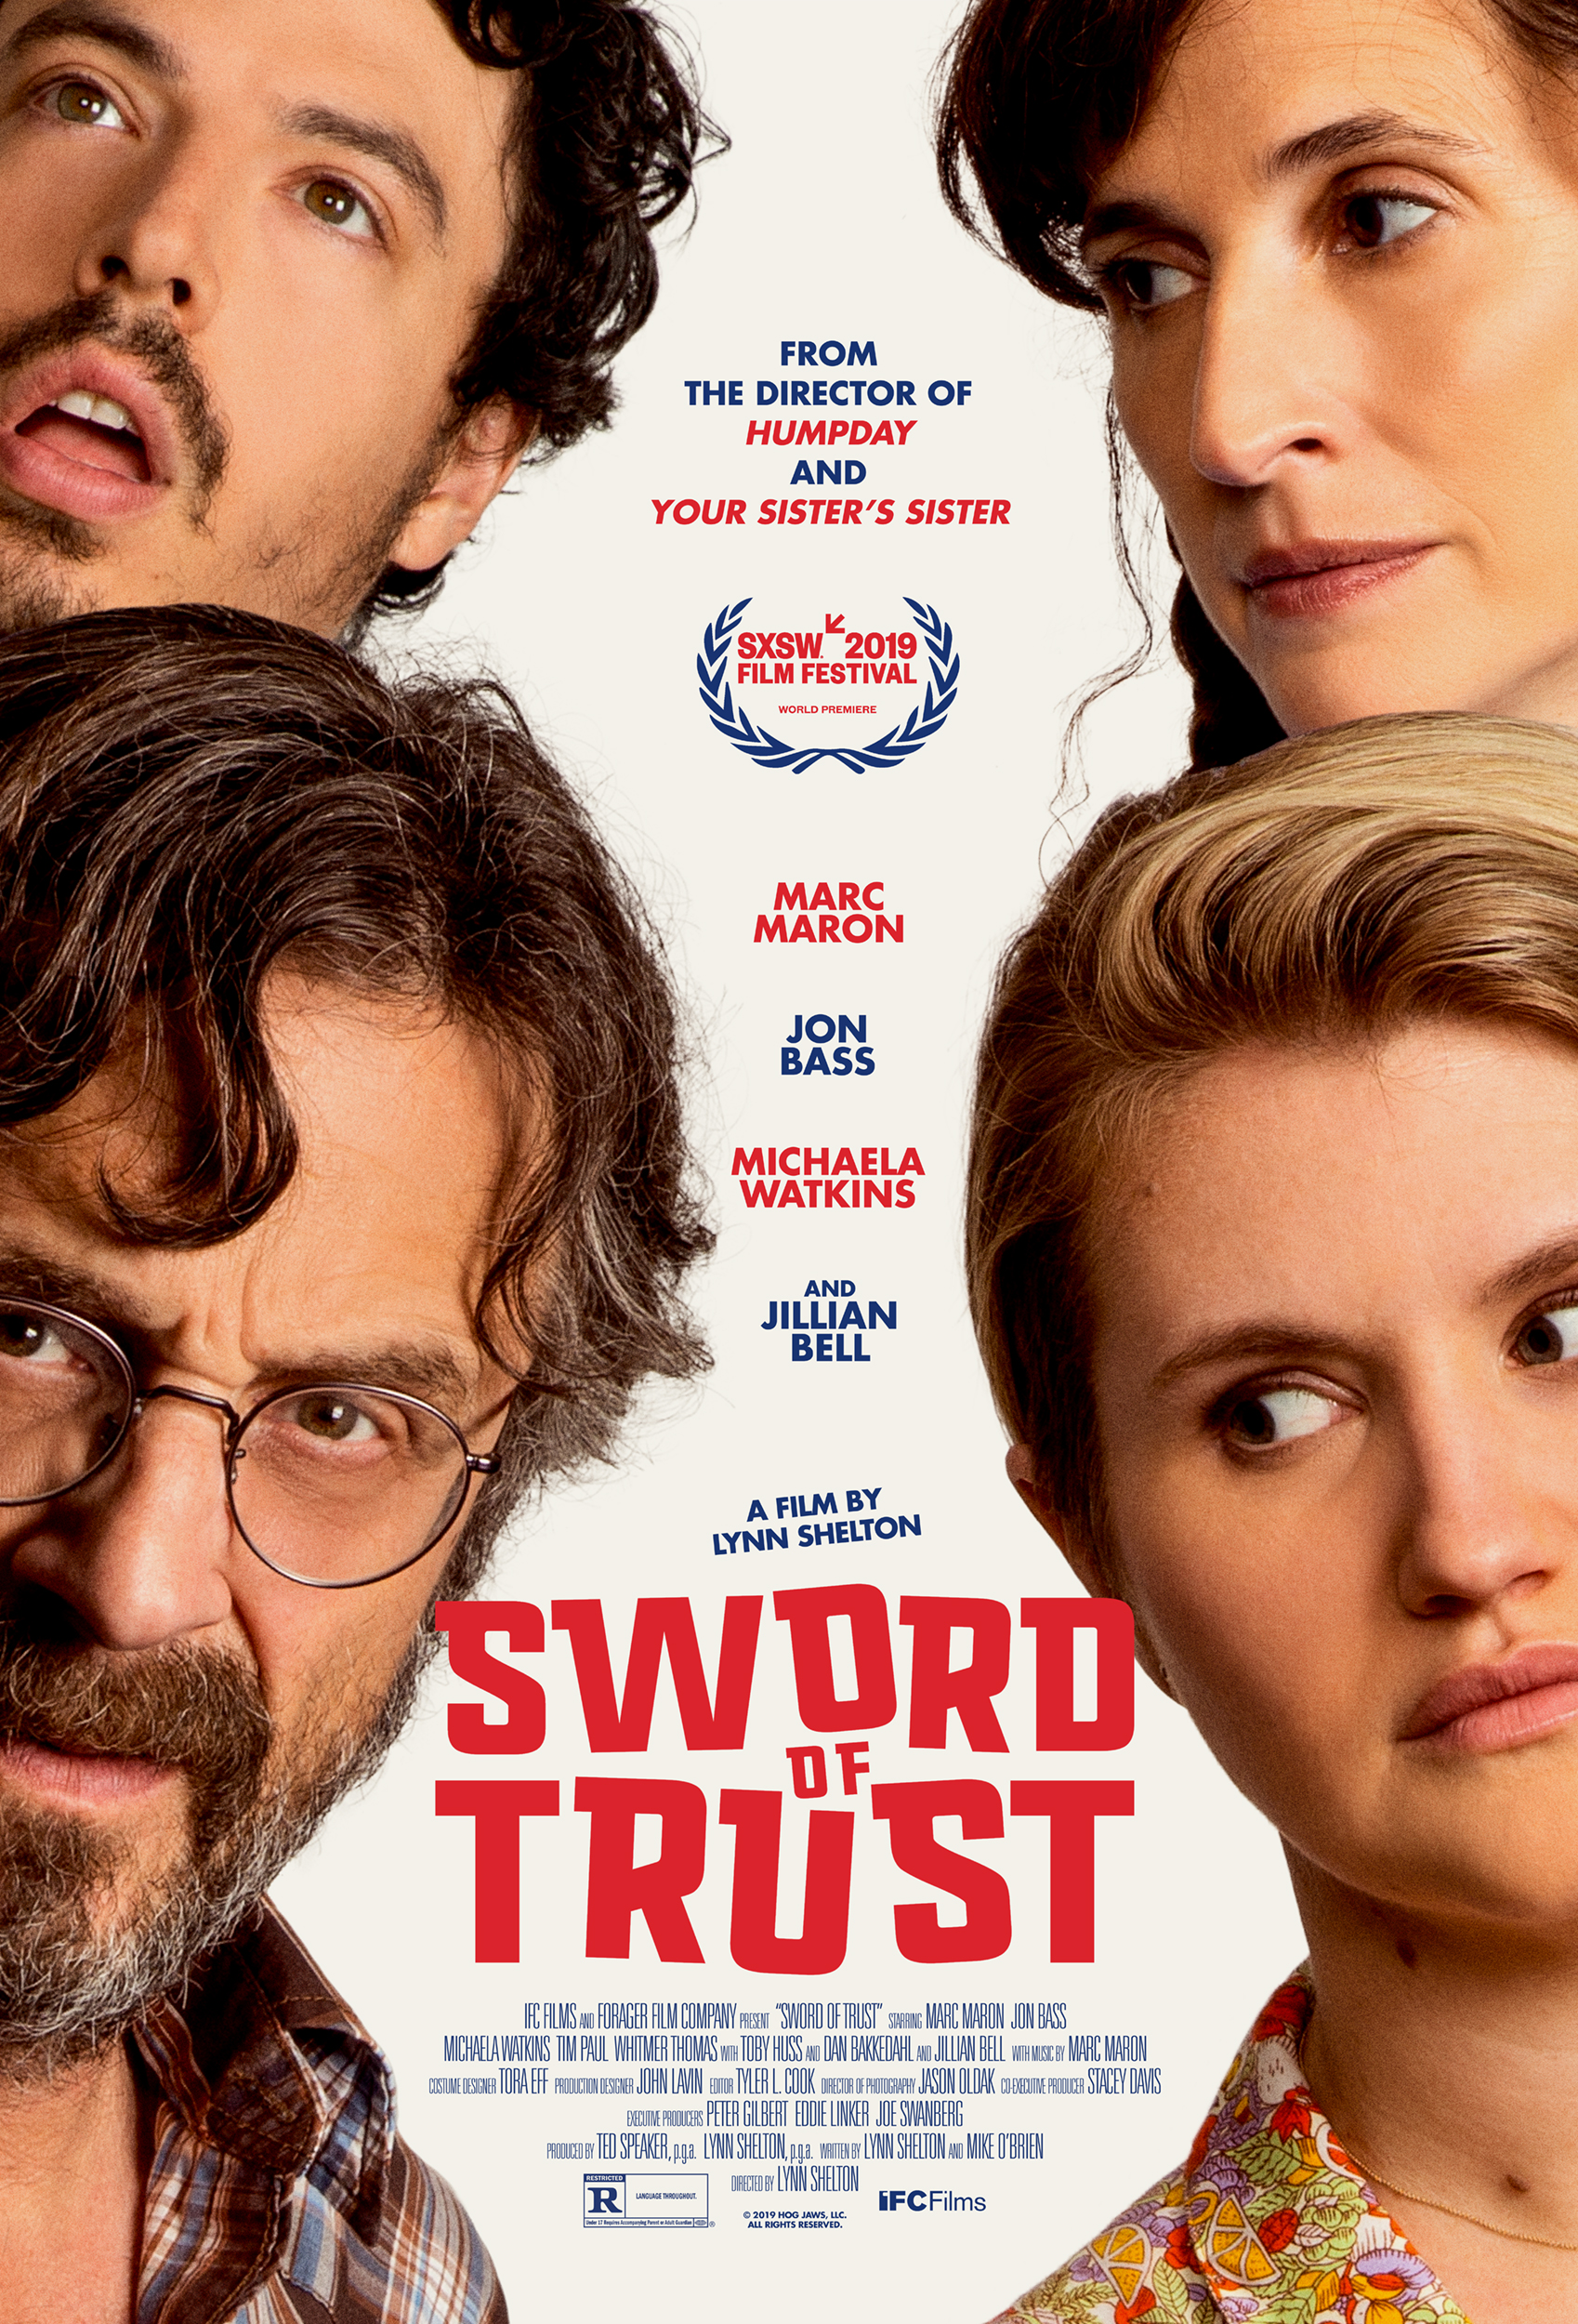 Sword of Trust (2019) - Directed By: Lynn SheltonStarring: Marc Maron, Jon Bass, Michaela Watkins, Jillian Bell, Toby Huss, Dan BakkedahlRated: RRun Time: 1h 28mTMM Score: 3 StarsStrengths: Creative Premis, Funny yet Heartfelt, Not Overly PreachyWeakness: Improv Too Long In Spots, Lacks Fun